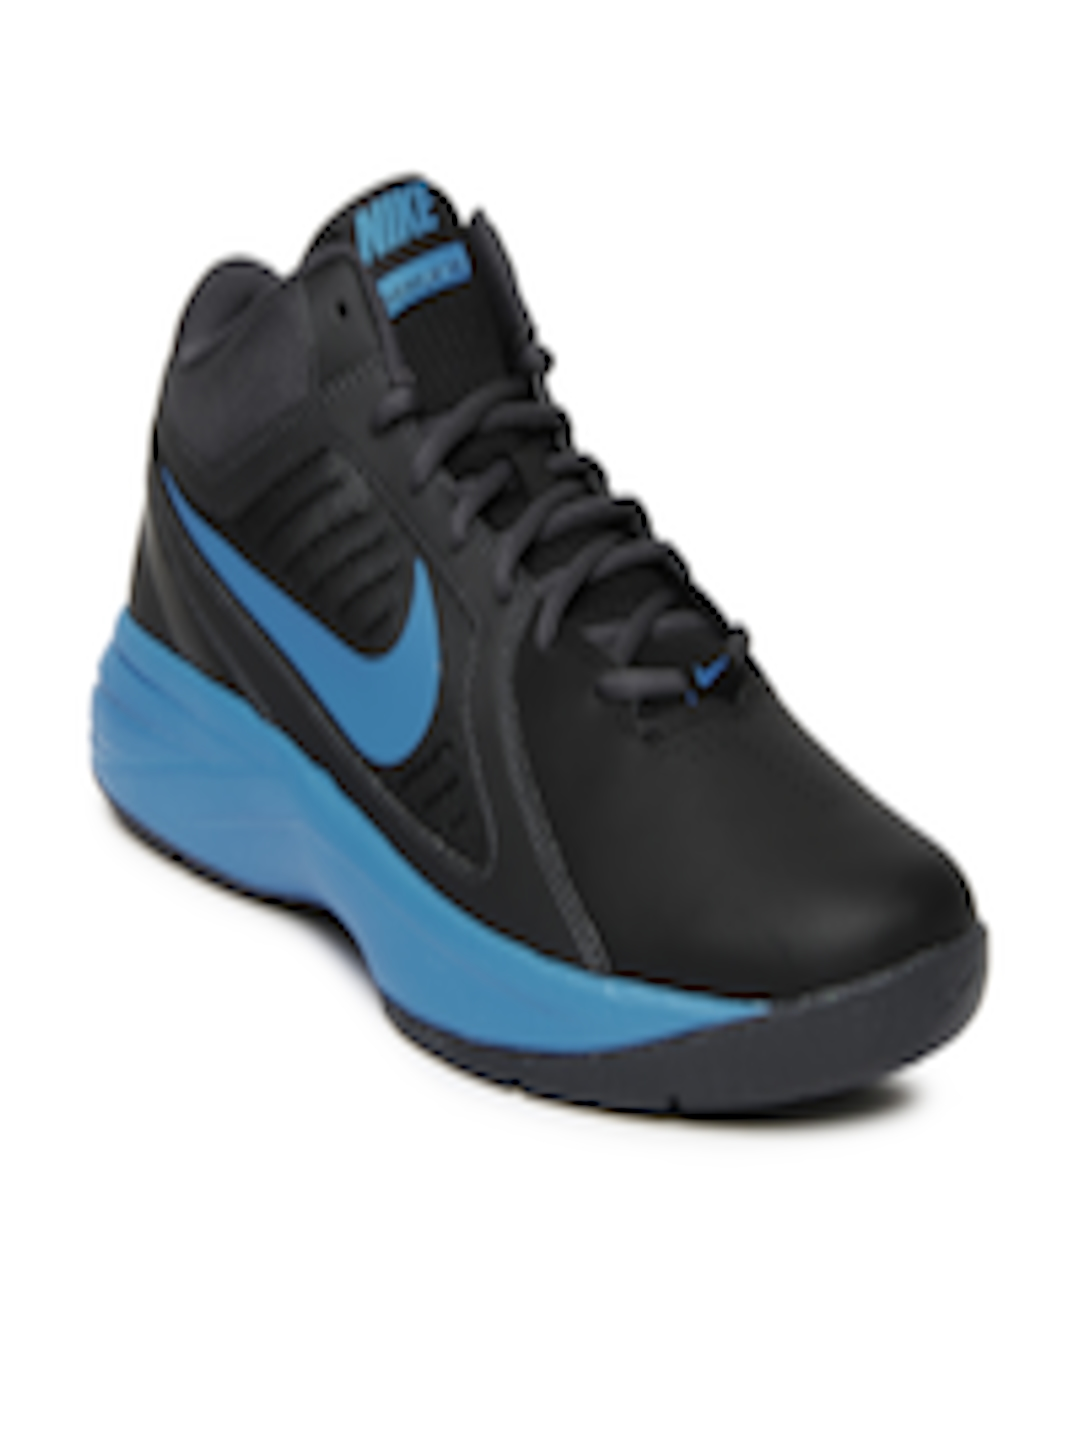 7d77151621d13 Buy Nike Black The Overplay VIII Basketball Sports Shoes - - Footwear for  Men